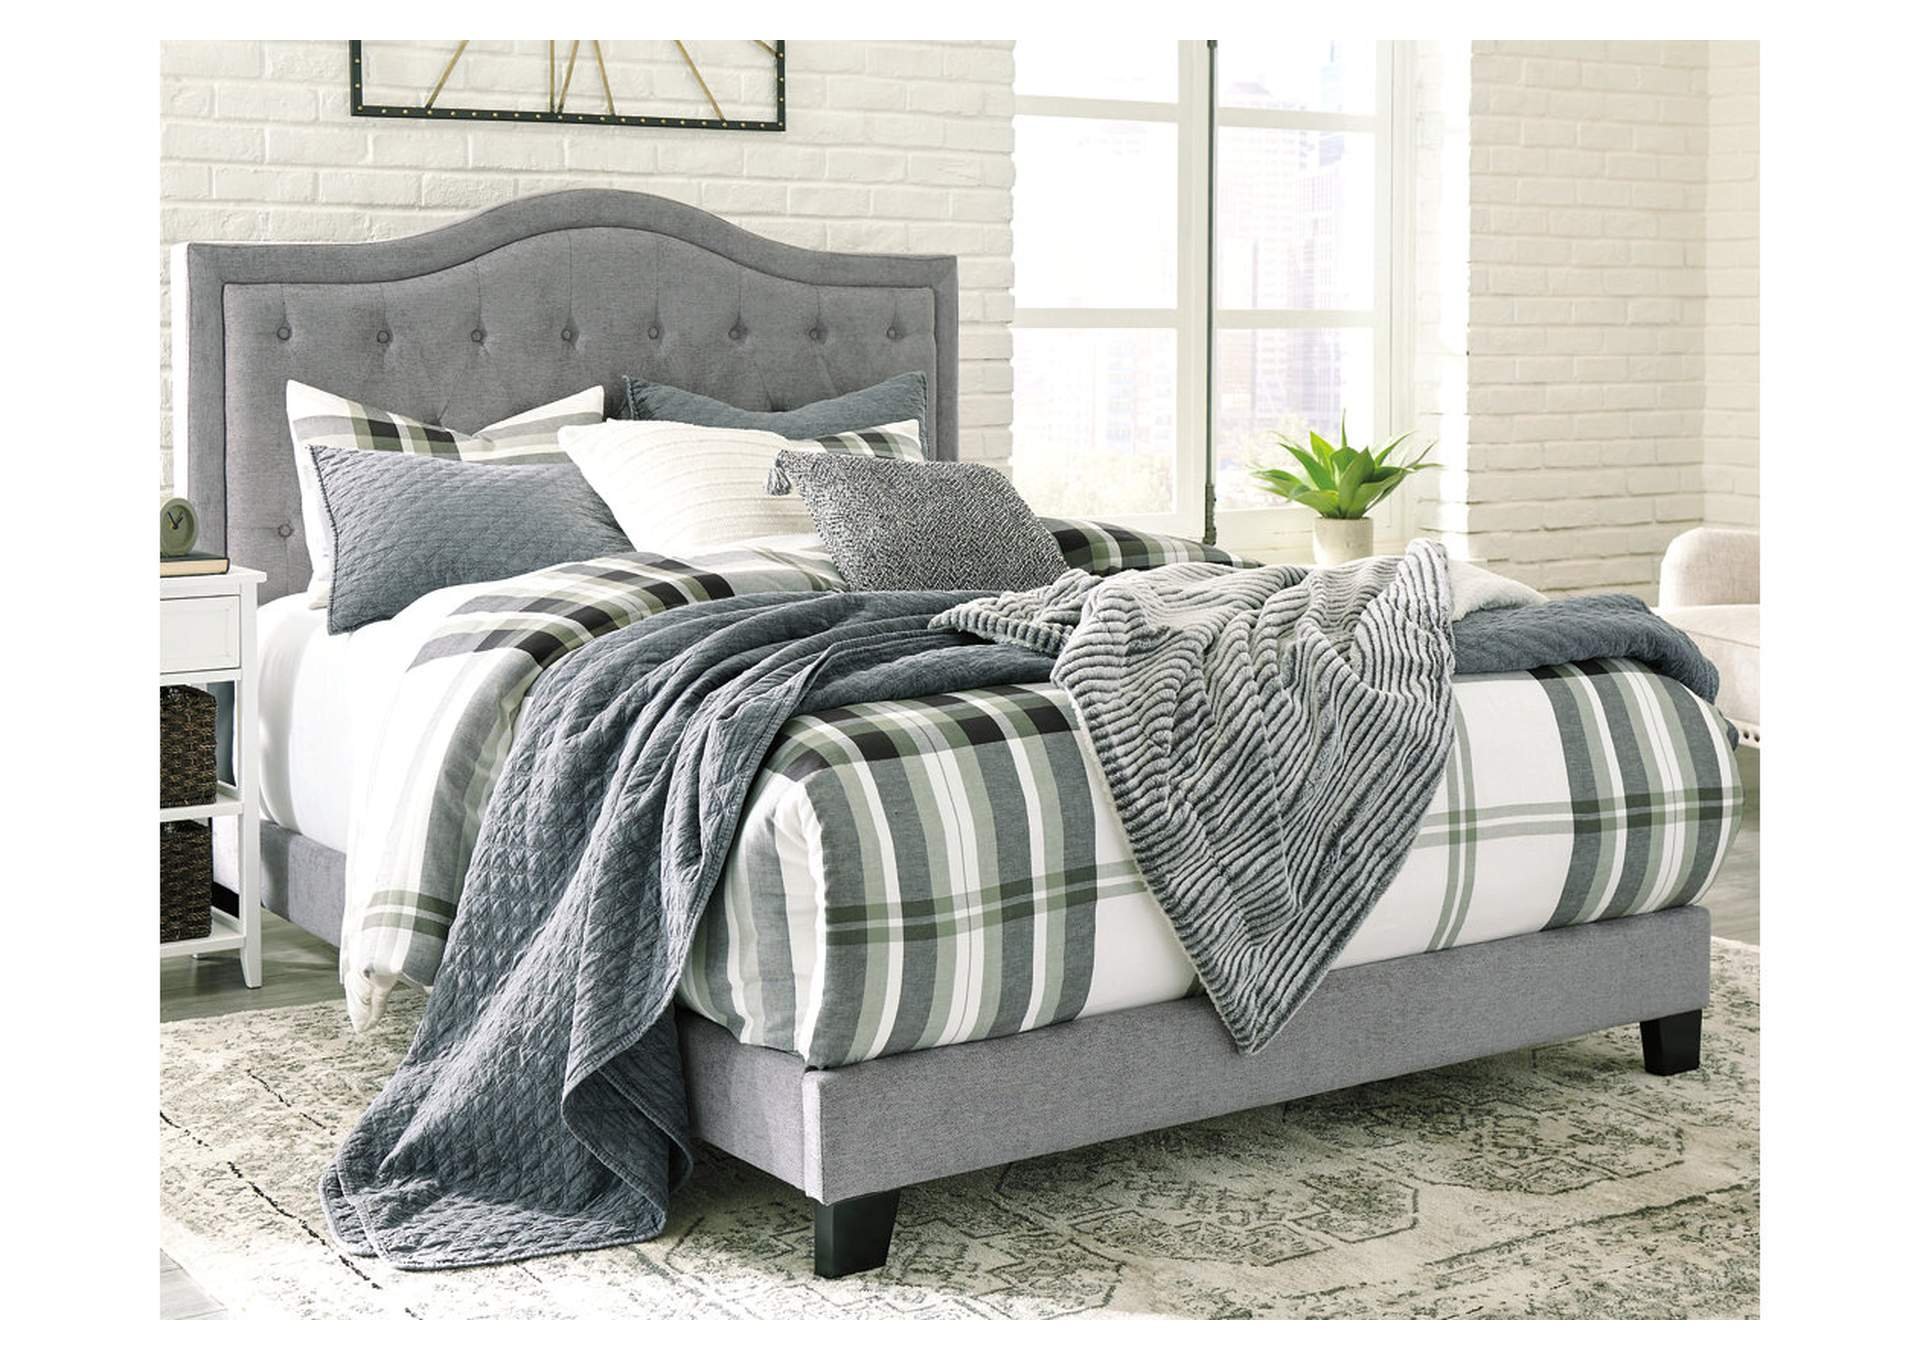 Jerary Gray Queen Upholstered Bed,Signature Design By Ashley